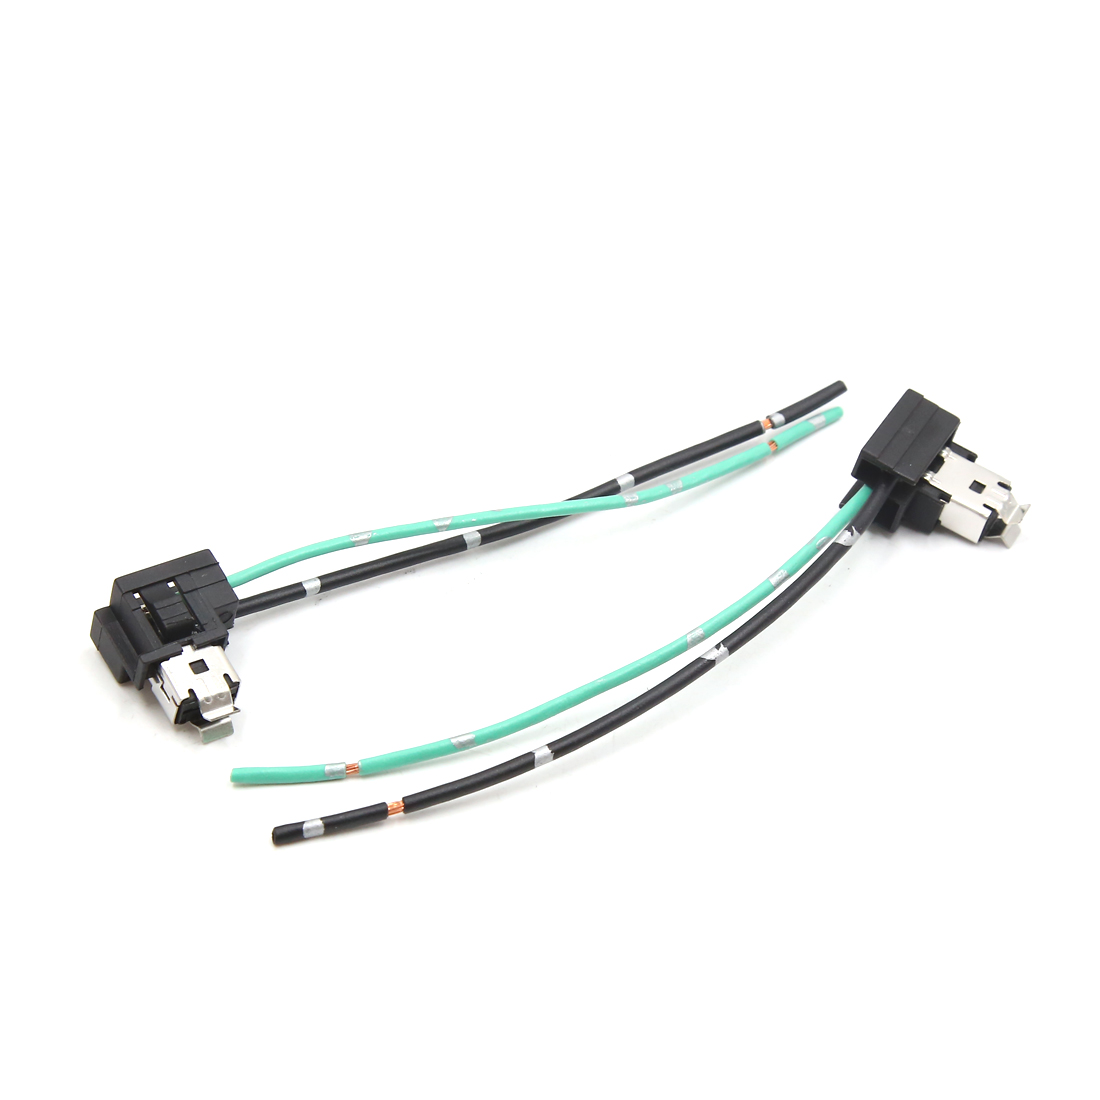 2Pcs H1 Halogen Fog Light Lamp Extension Wire Harness